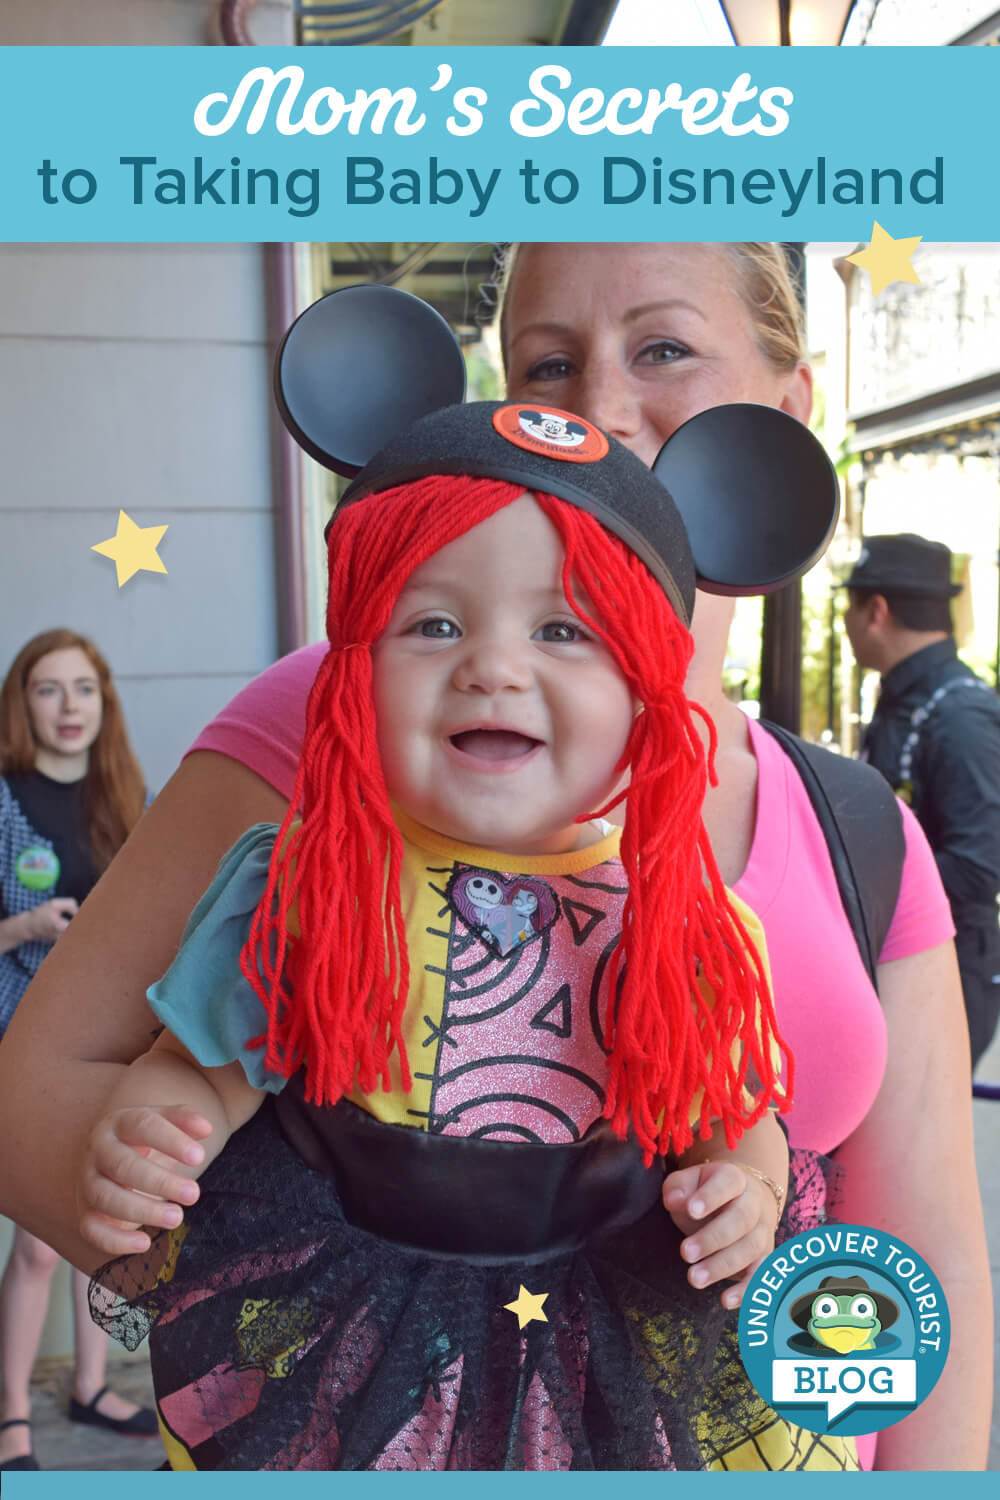 Mom's Secrets for Going to Disneyland with a Baby